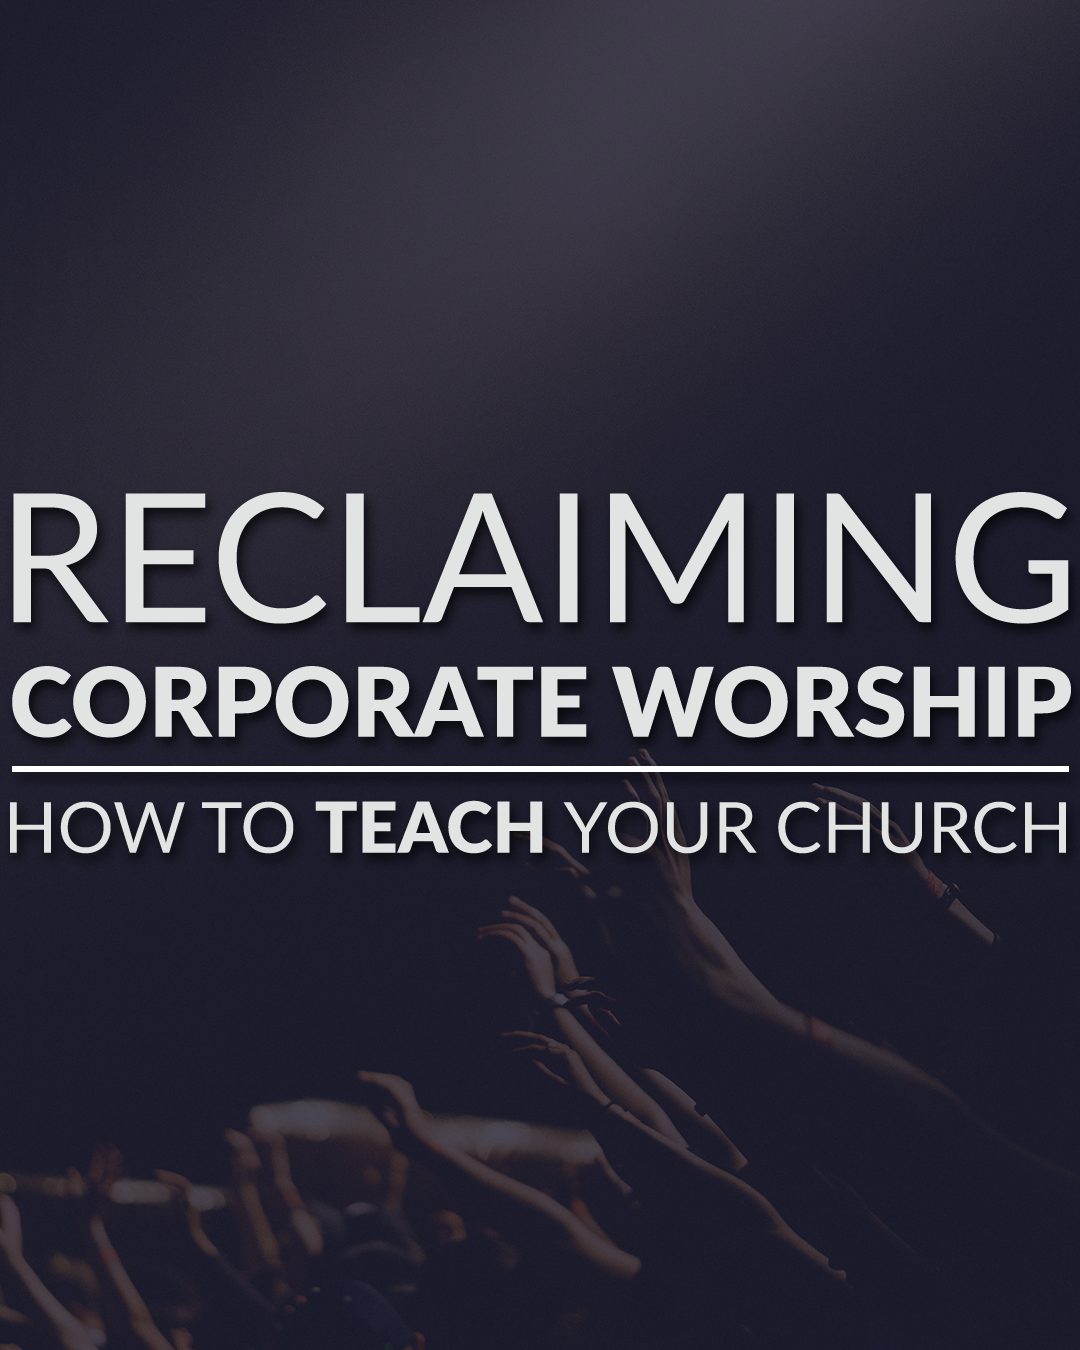 Reclaiming Corporate Worship - How To Teach Your Church